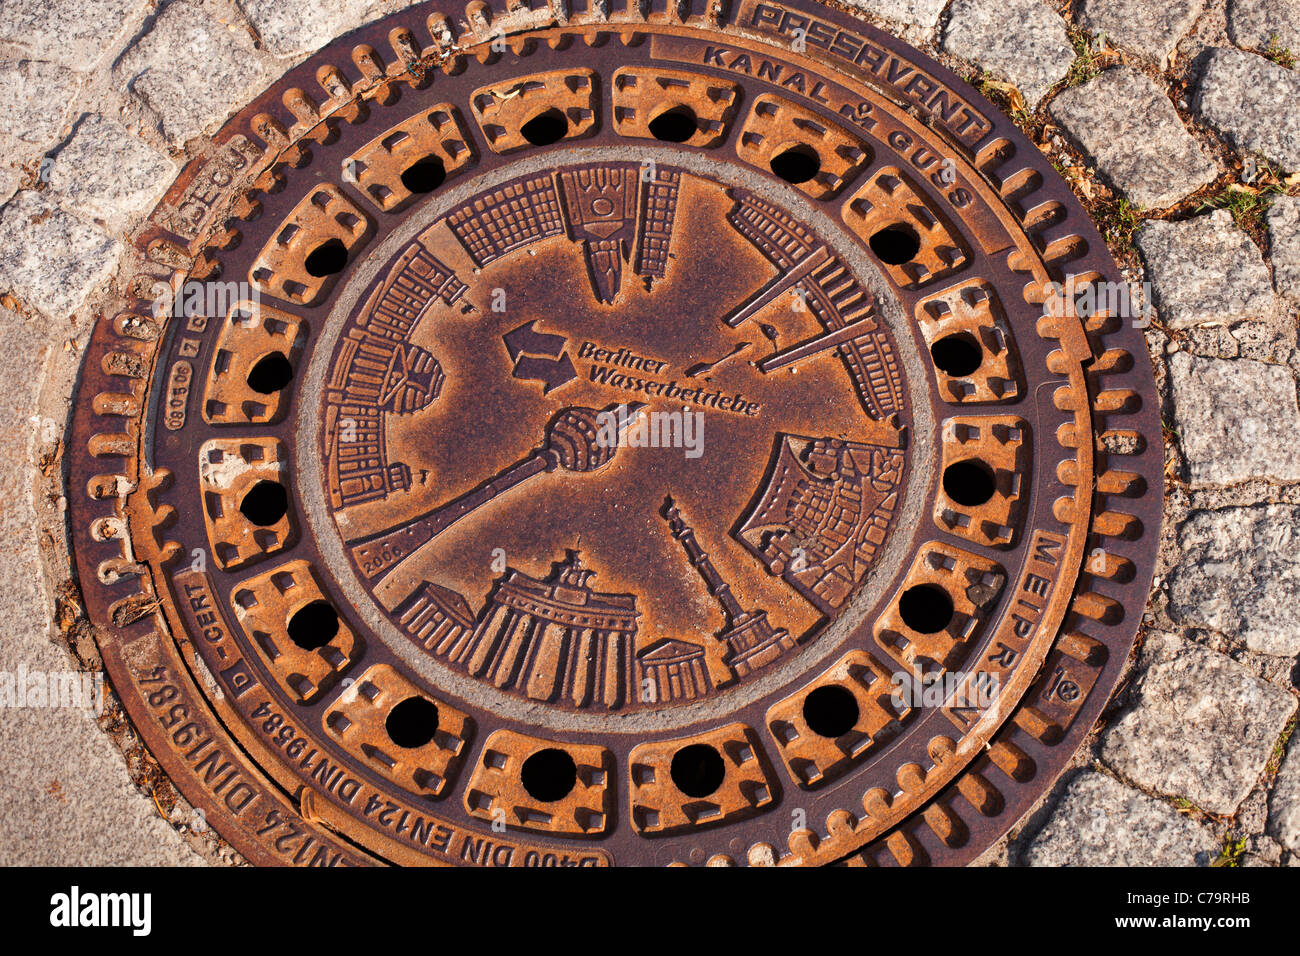 Manhole cover in Berlin, Germany. - Stock Image